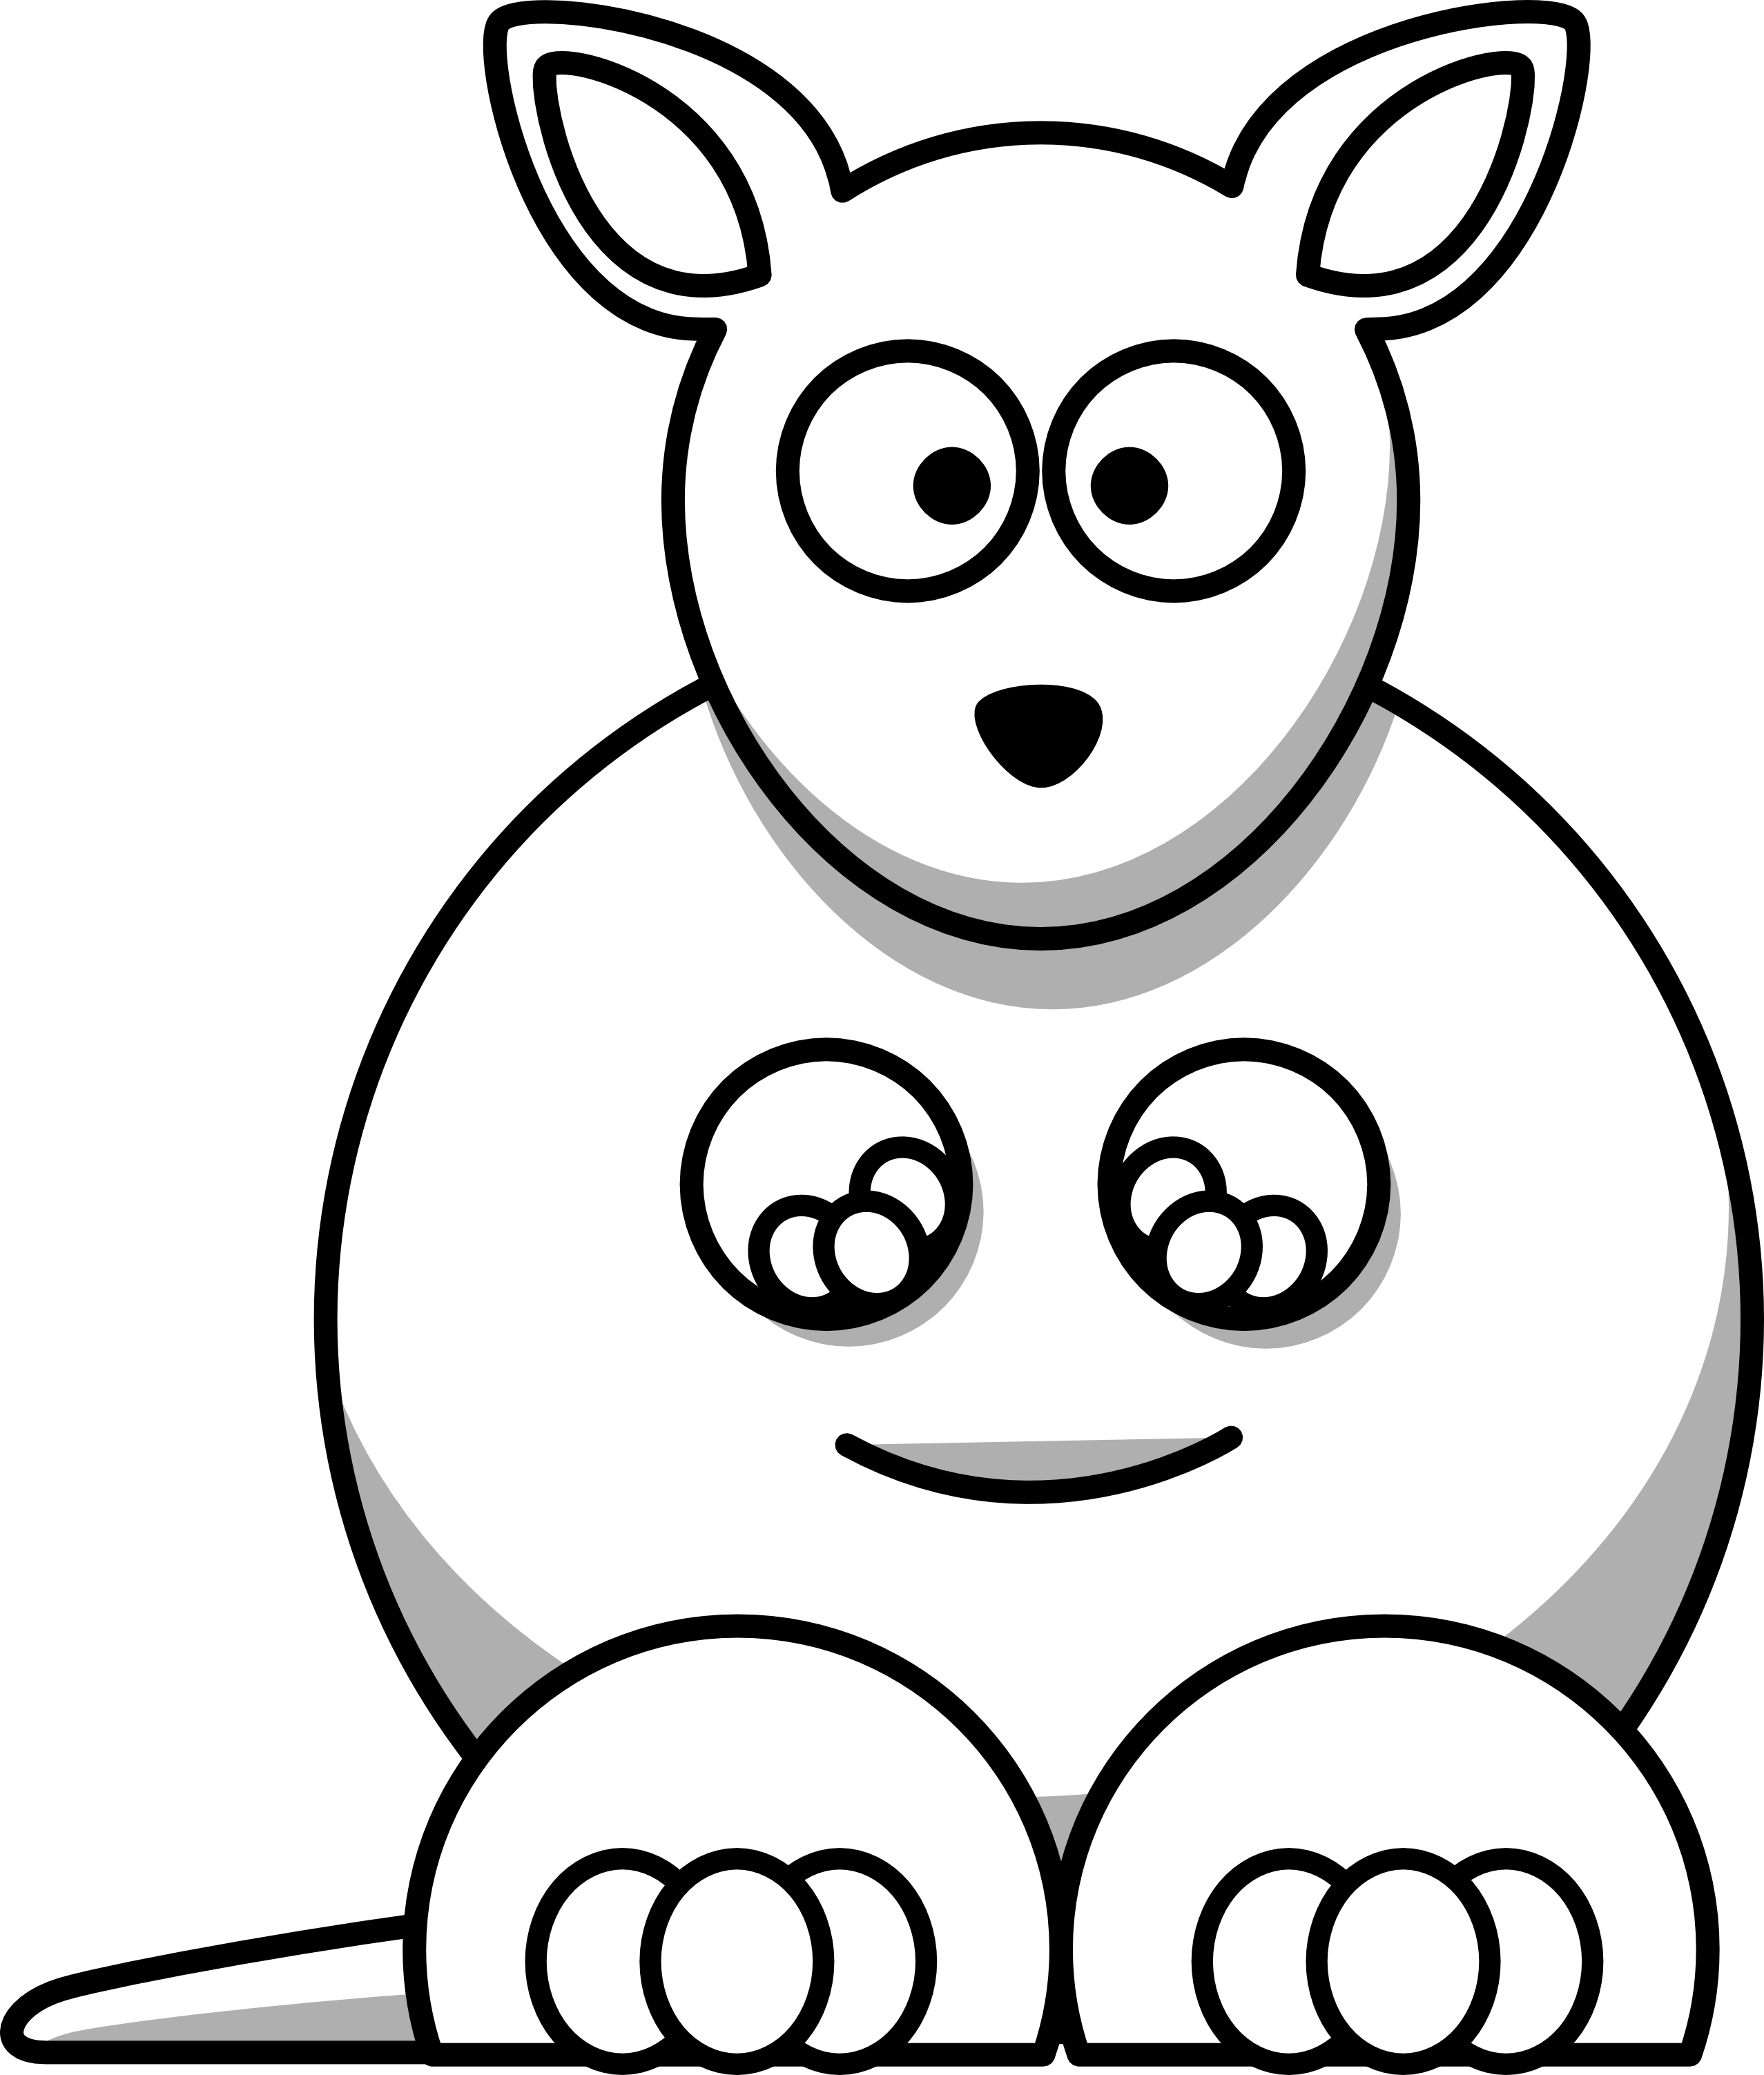 Clipart Animal Simple Line Drawing : Black and white drawings of animals cliparts